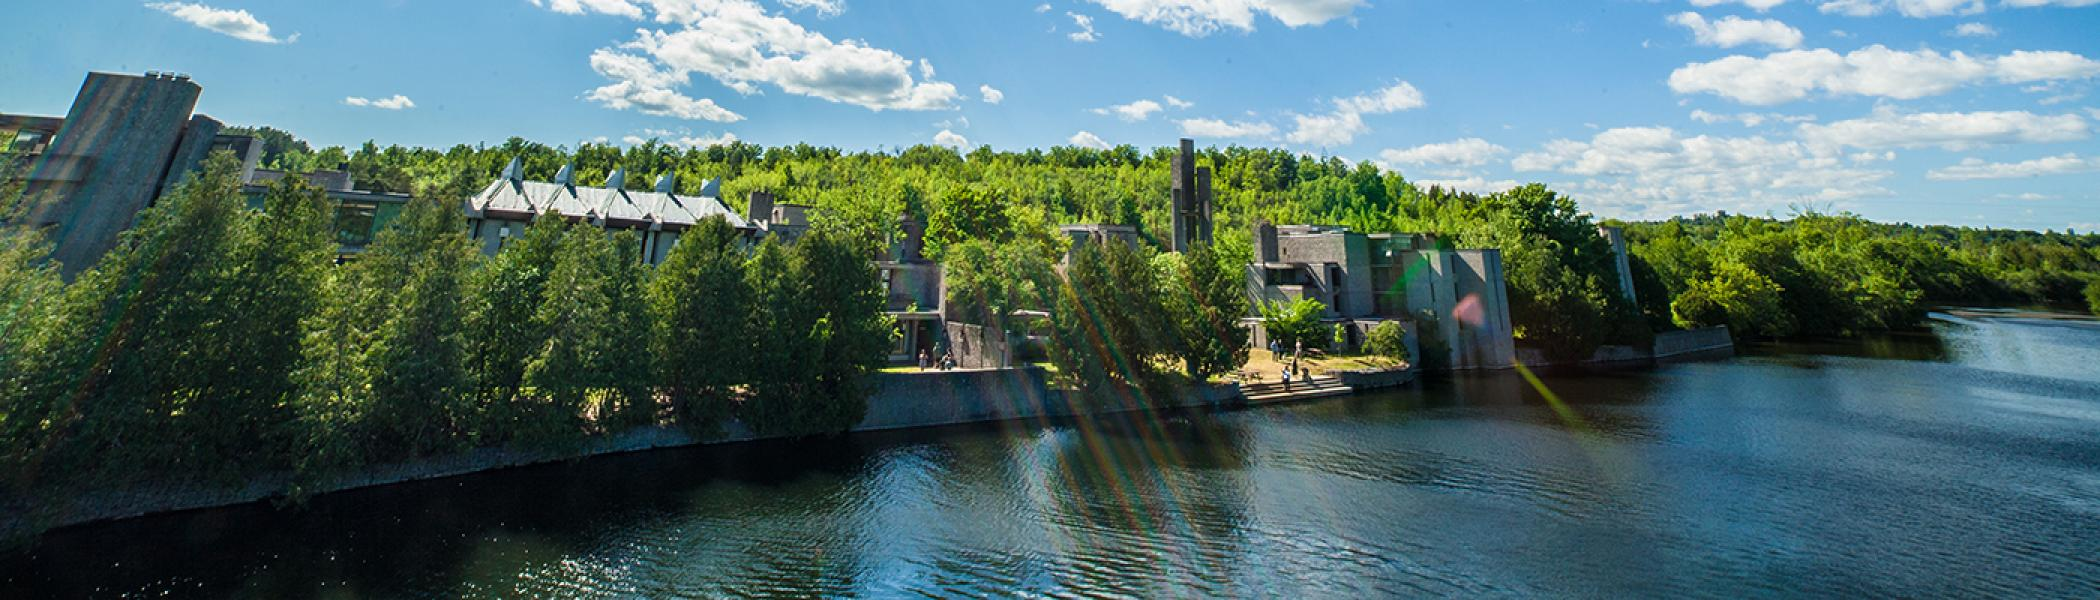 Exterior view of Champlain college in the summer sun, taken from the Faryon bridge